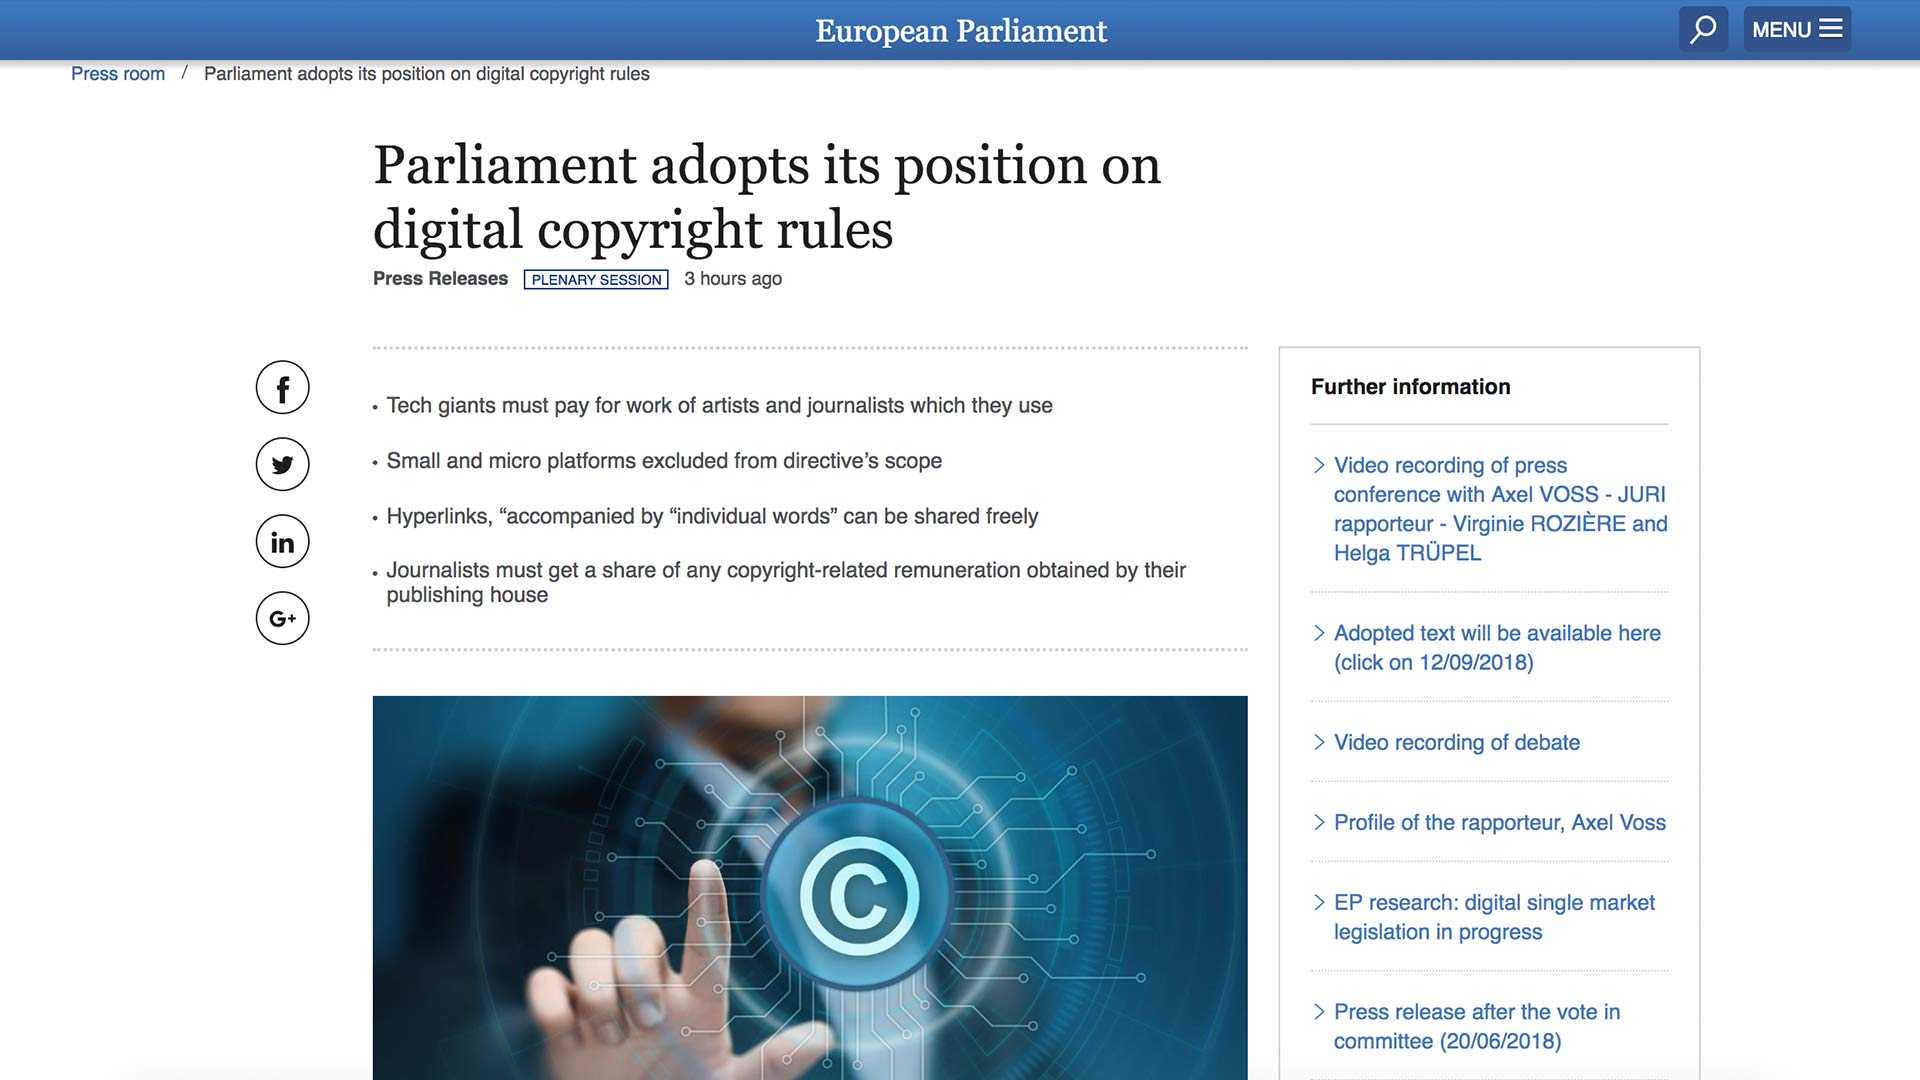 Fairness Rocks News Parliament adopts its position on digital copyright rules